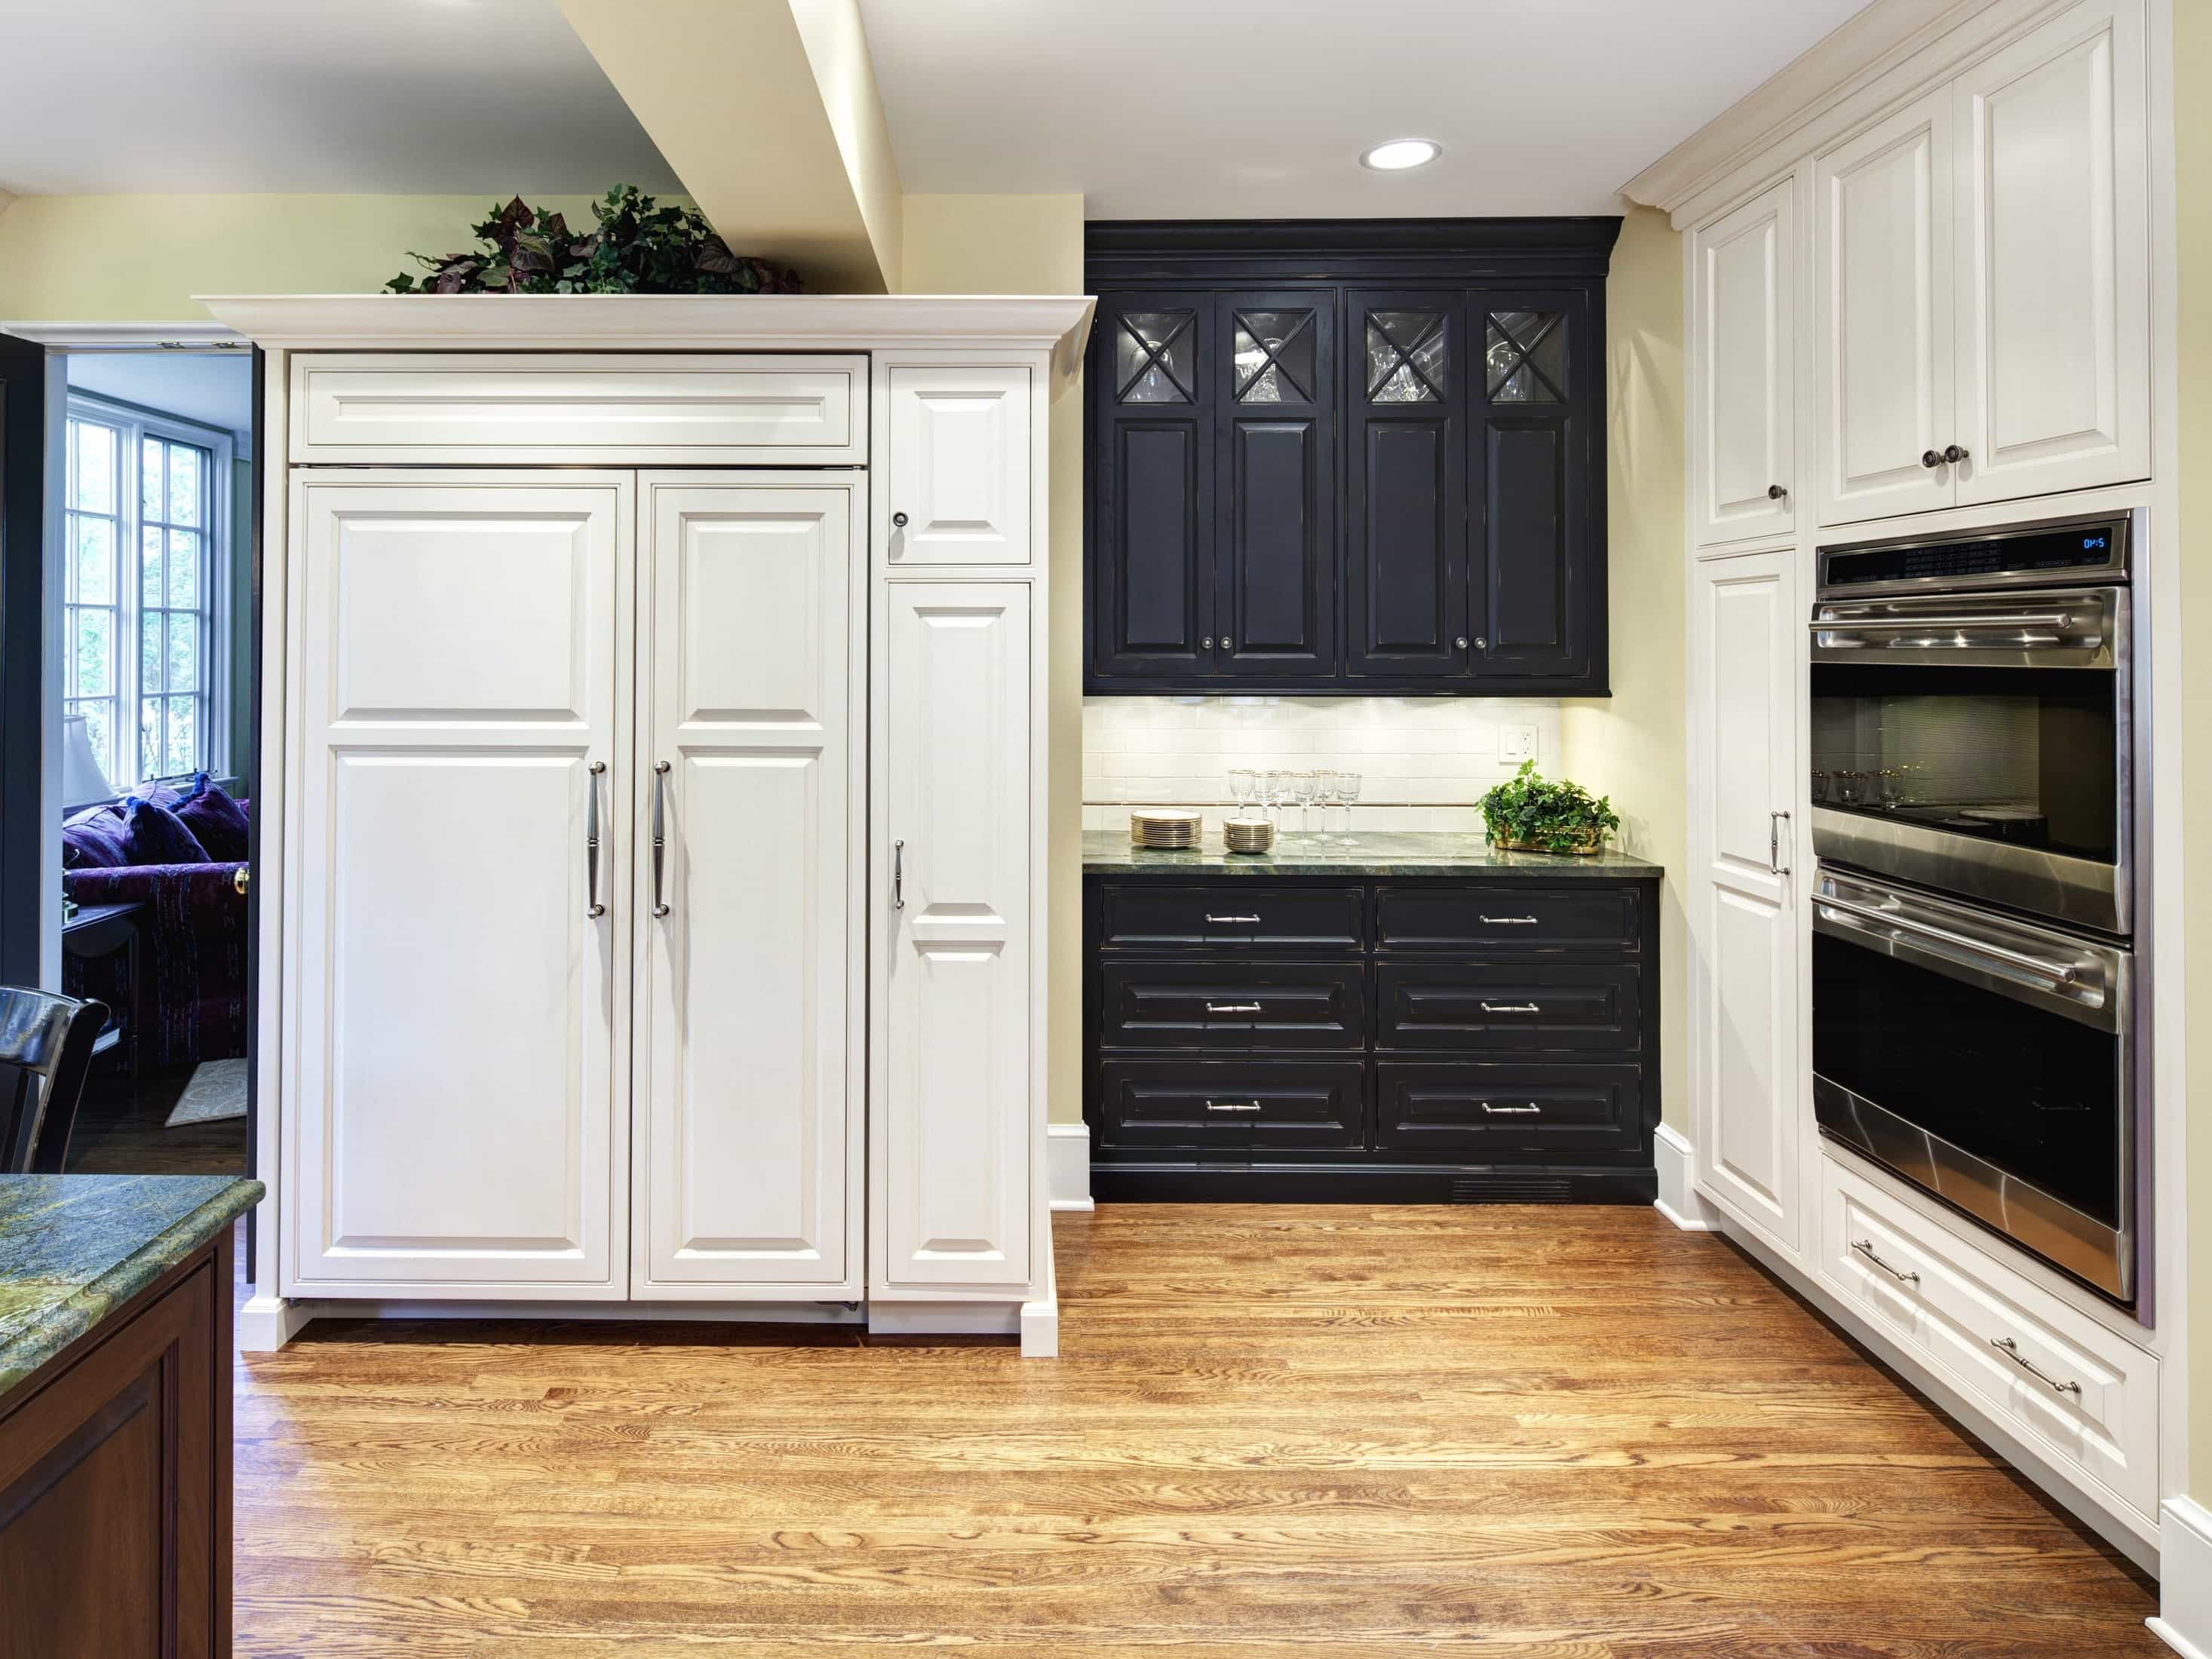 Dark Walnut Shaker Cabinets Crown Moulding For Classic Kitchen (Image 1 of 7)